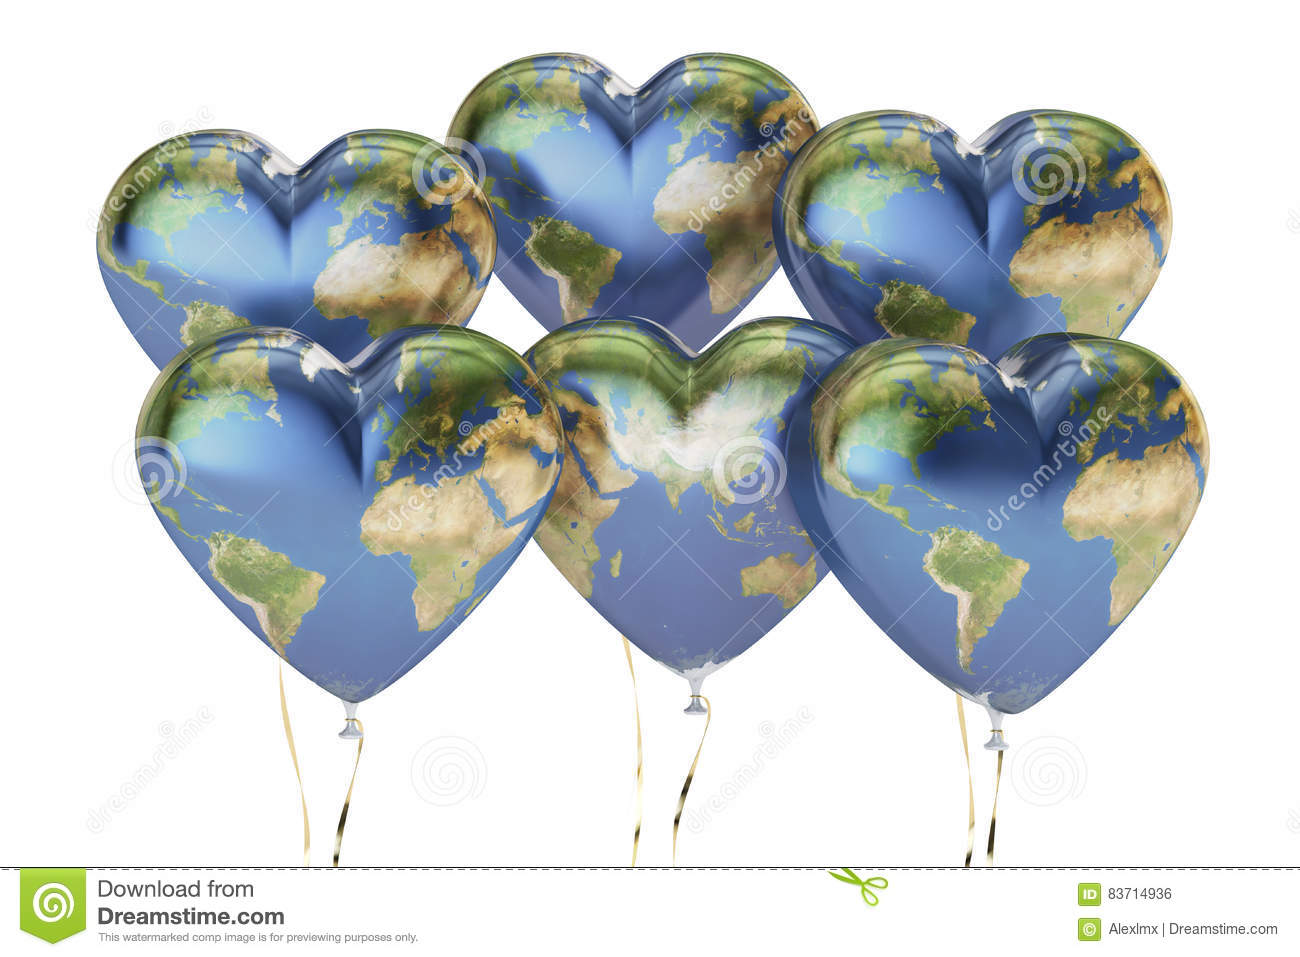 Balloons In The Shape Of Hearts With Map Of Earth, 3D Rendering Stock Illustration